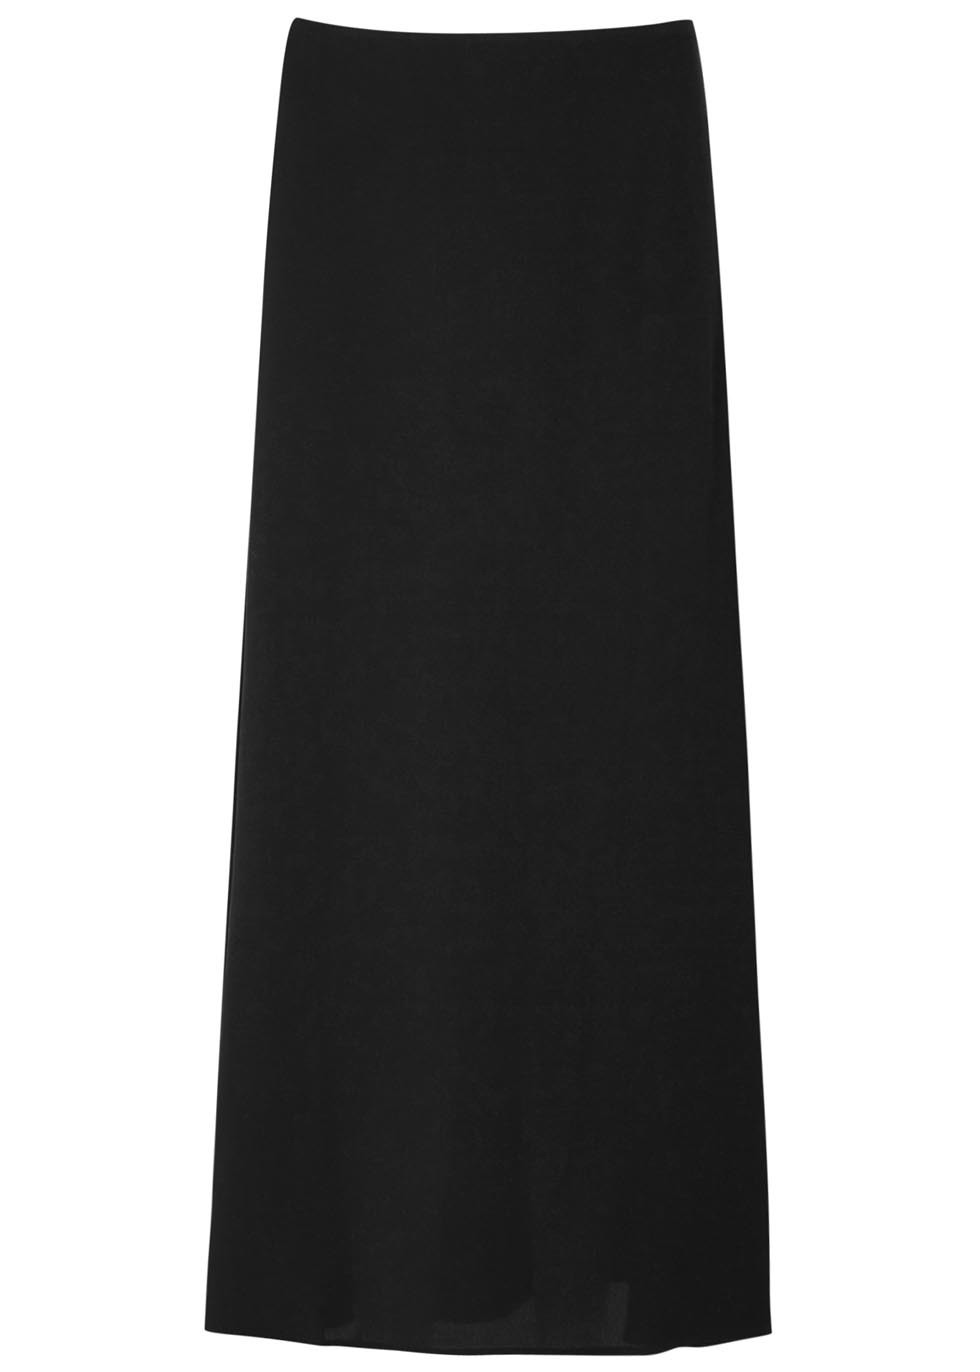 Black Silk Georgette Maxi Skirt - pattern: plain; length: ankle length; fit: body skimming; waist: mid/regular rise; predominant colour: black; occasions: evening; style: maxi skirt; fibres: silk - 100%; texture group: silky - light; pattern type: fabric; season: s/s 2016